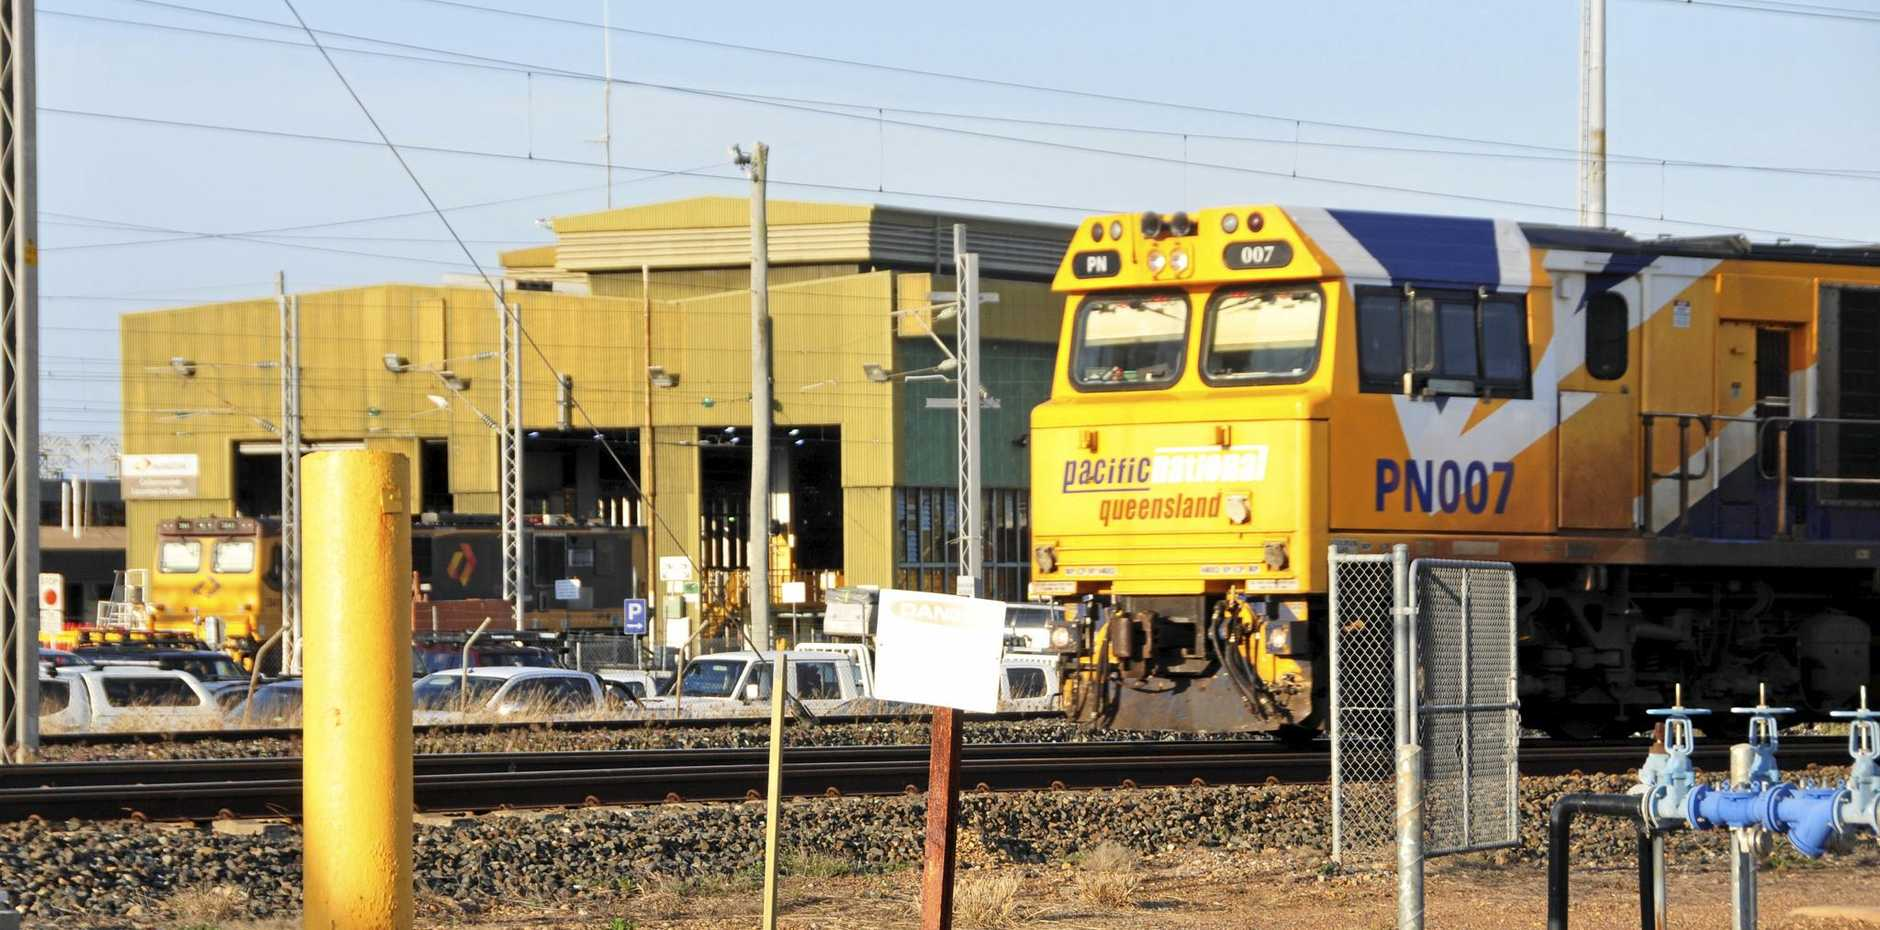 The ACCC is seeking submissions on Aurizon's and Pacific National's bid to buy Glencore's NSW coal haulage assets.